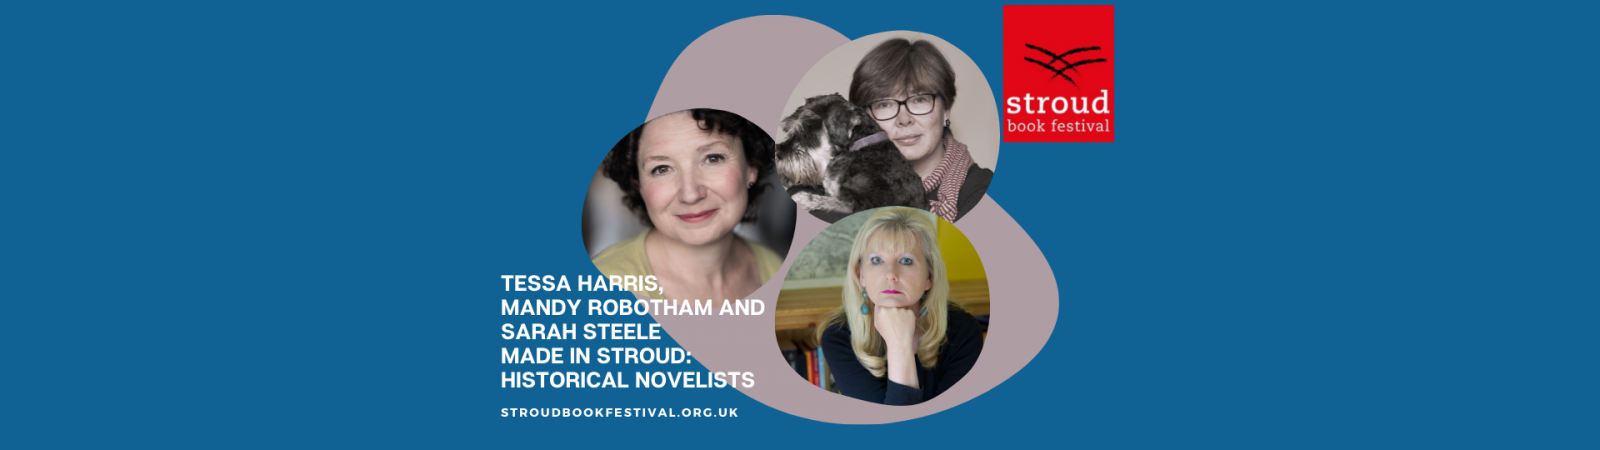 Made in Stroud*: Historical Novelists